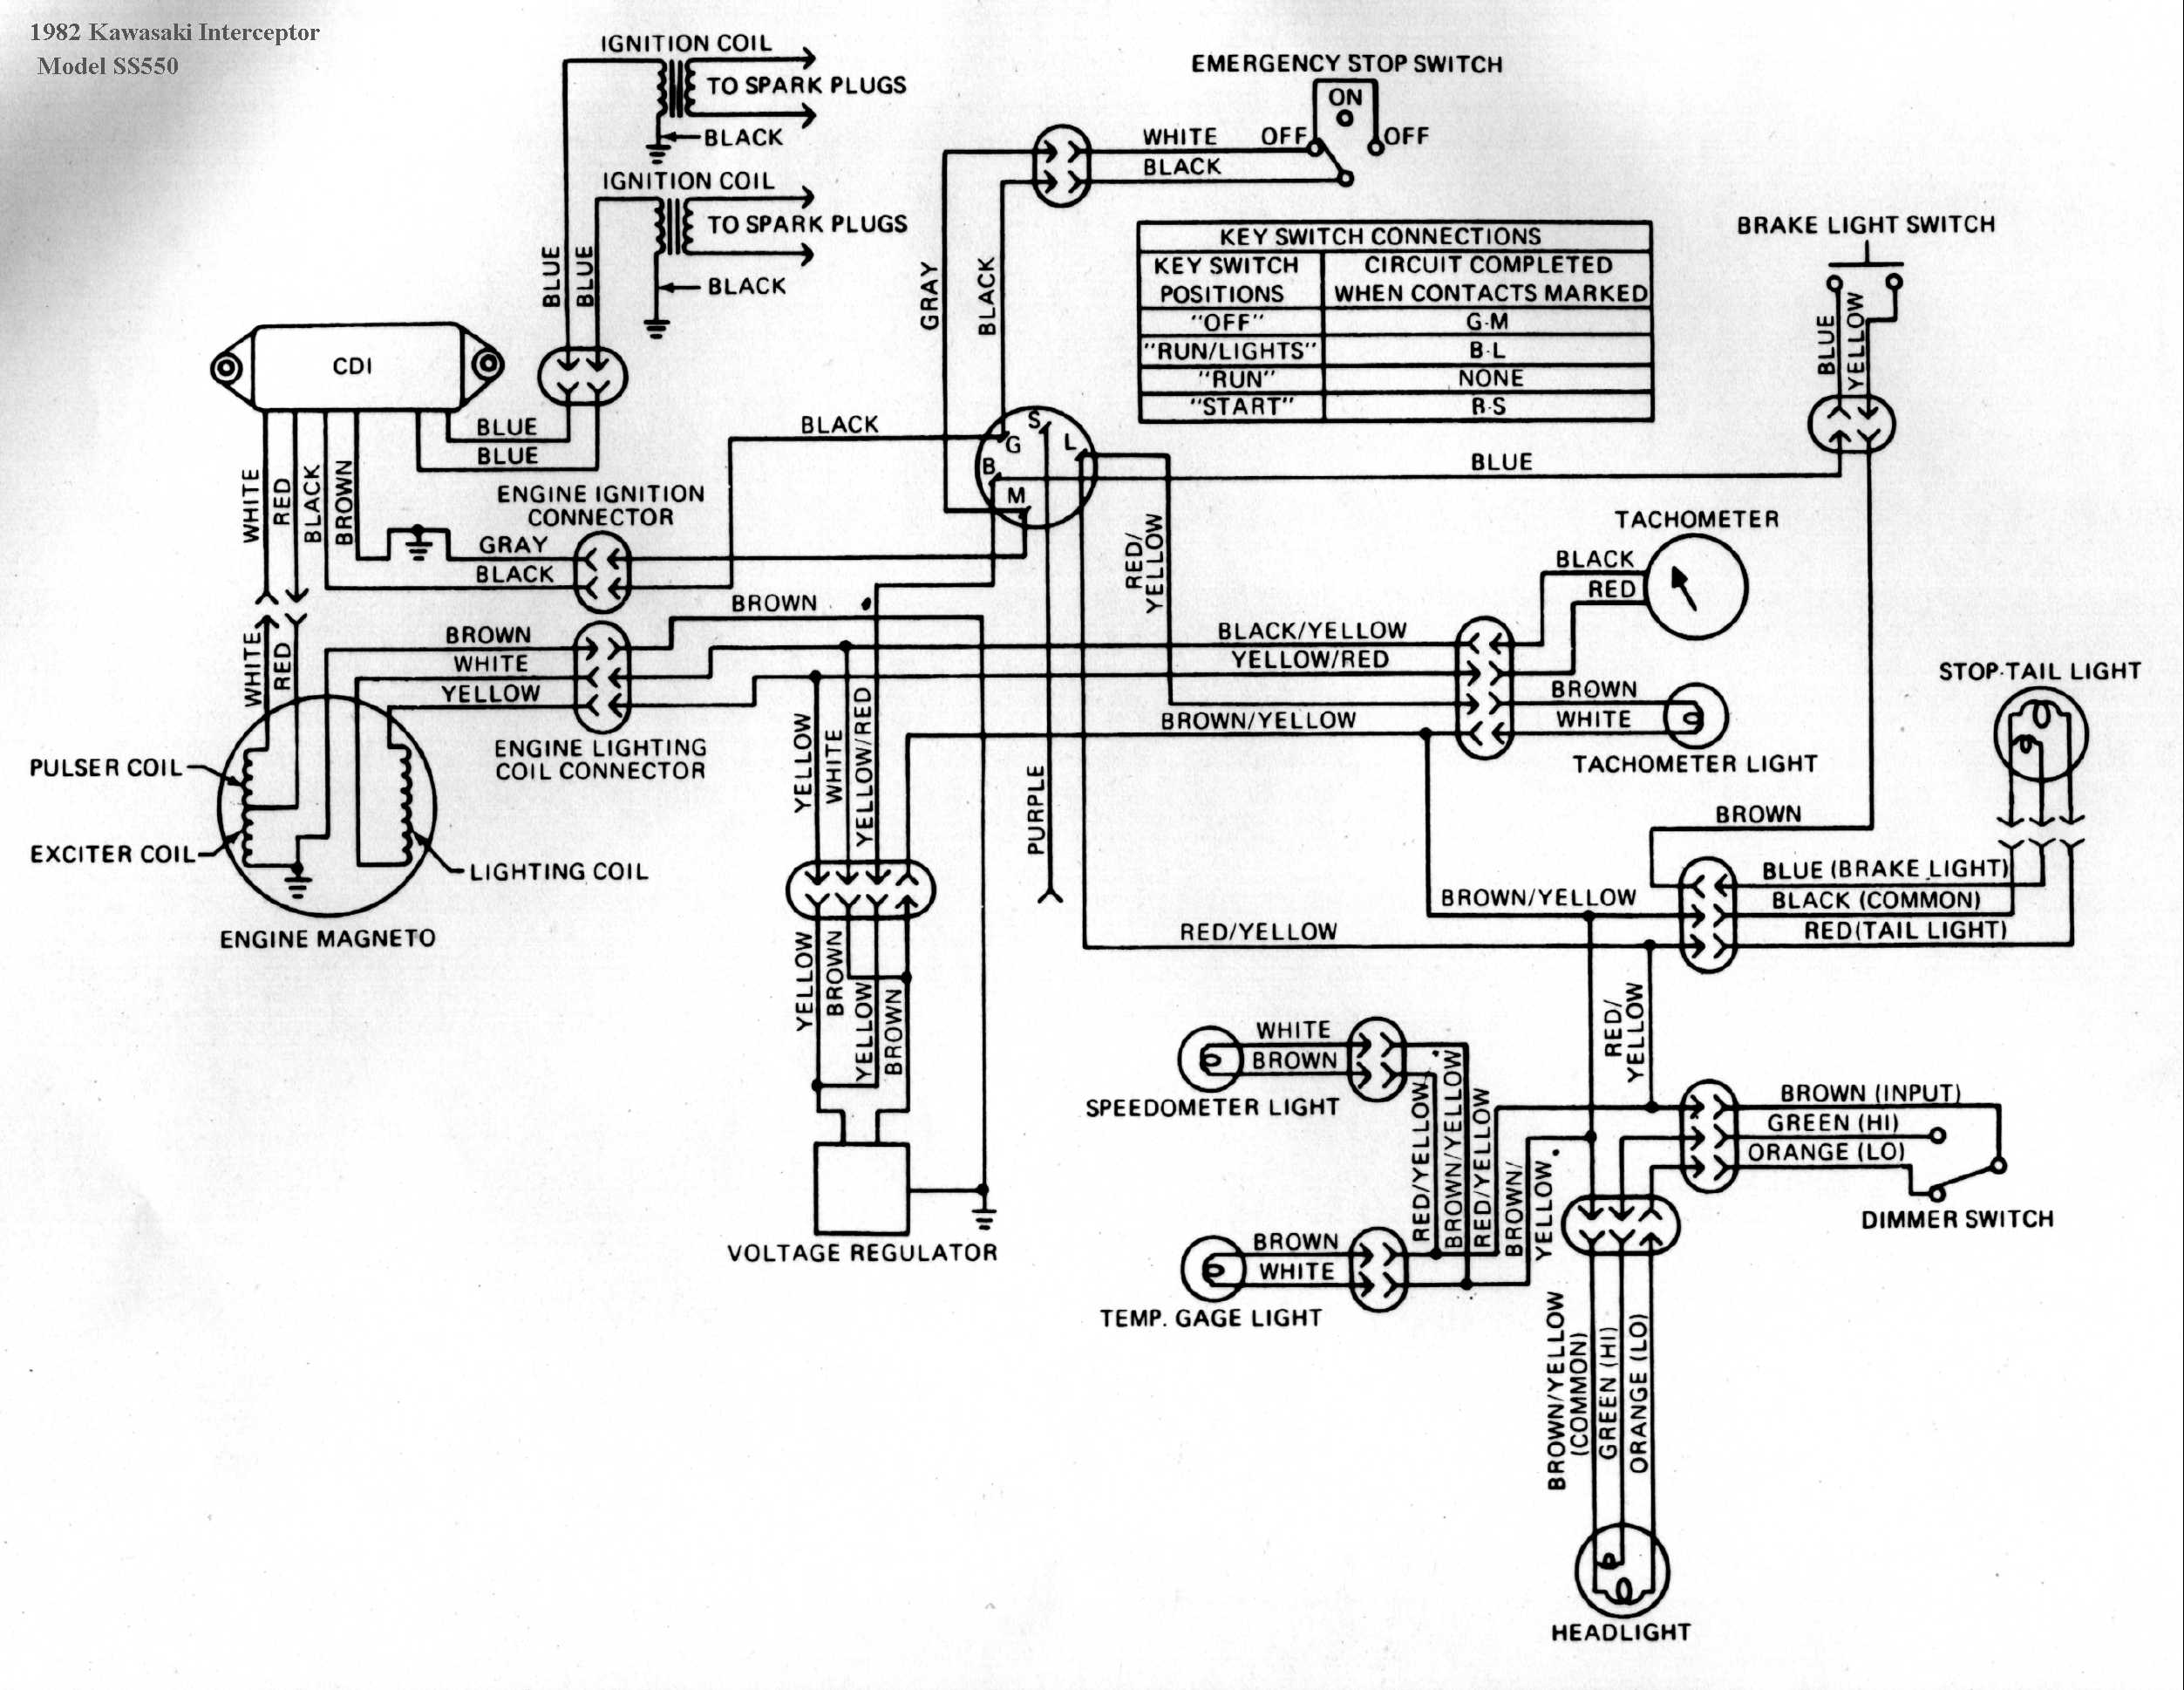 ss550 2009 kawasaki mule 4010 wiring diagram 2009 kawasaki mule 4010 kawasaki mule 2510 wiring diagram at bayanpartner.co